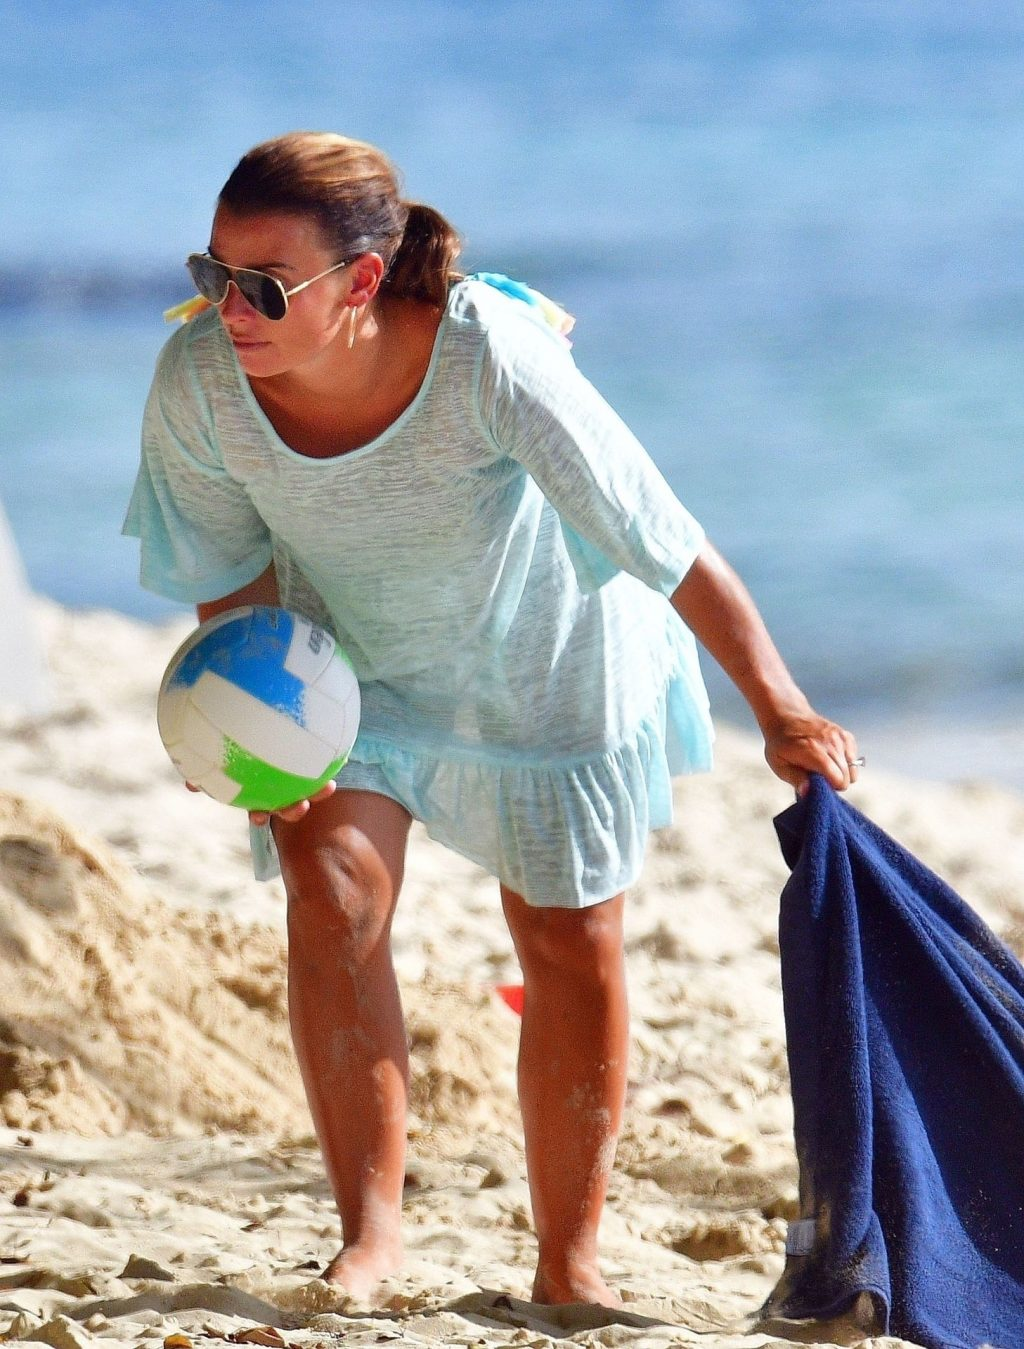 Coleen Rooney Shows Off Her Impressive Tan on the Beach in Barbados (63 Photos)